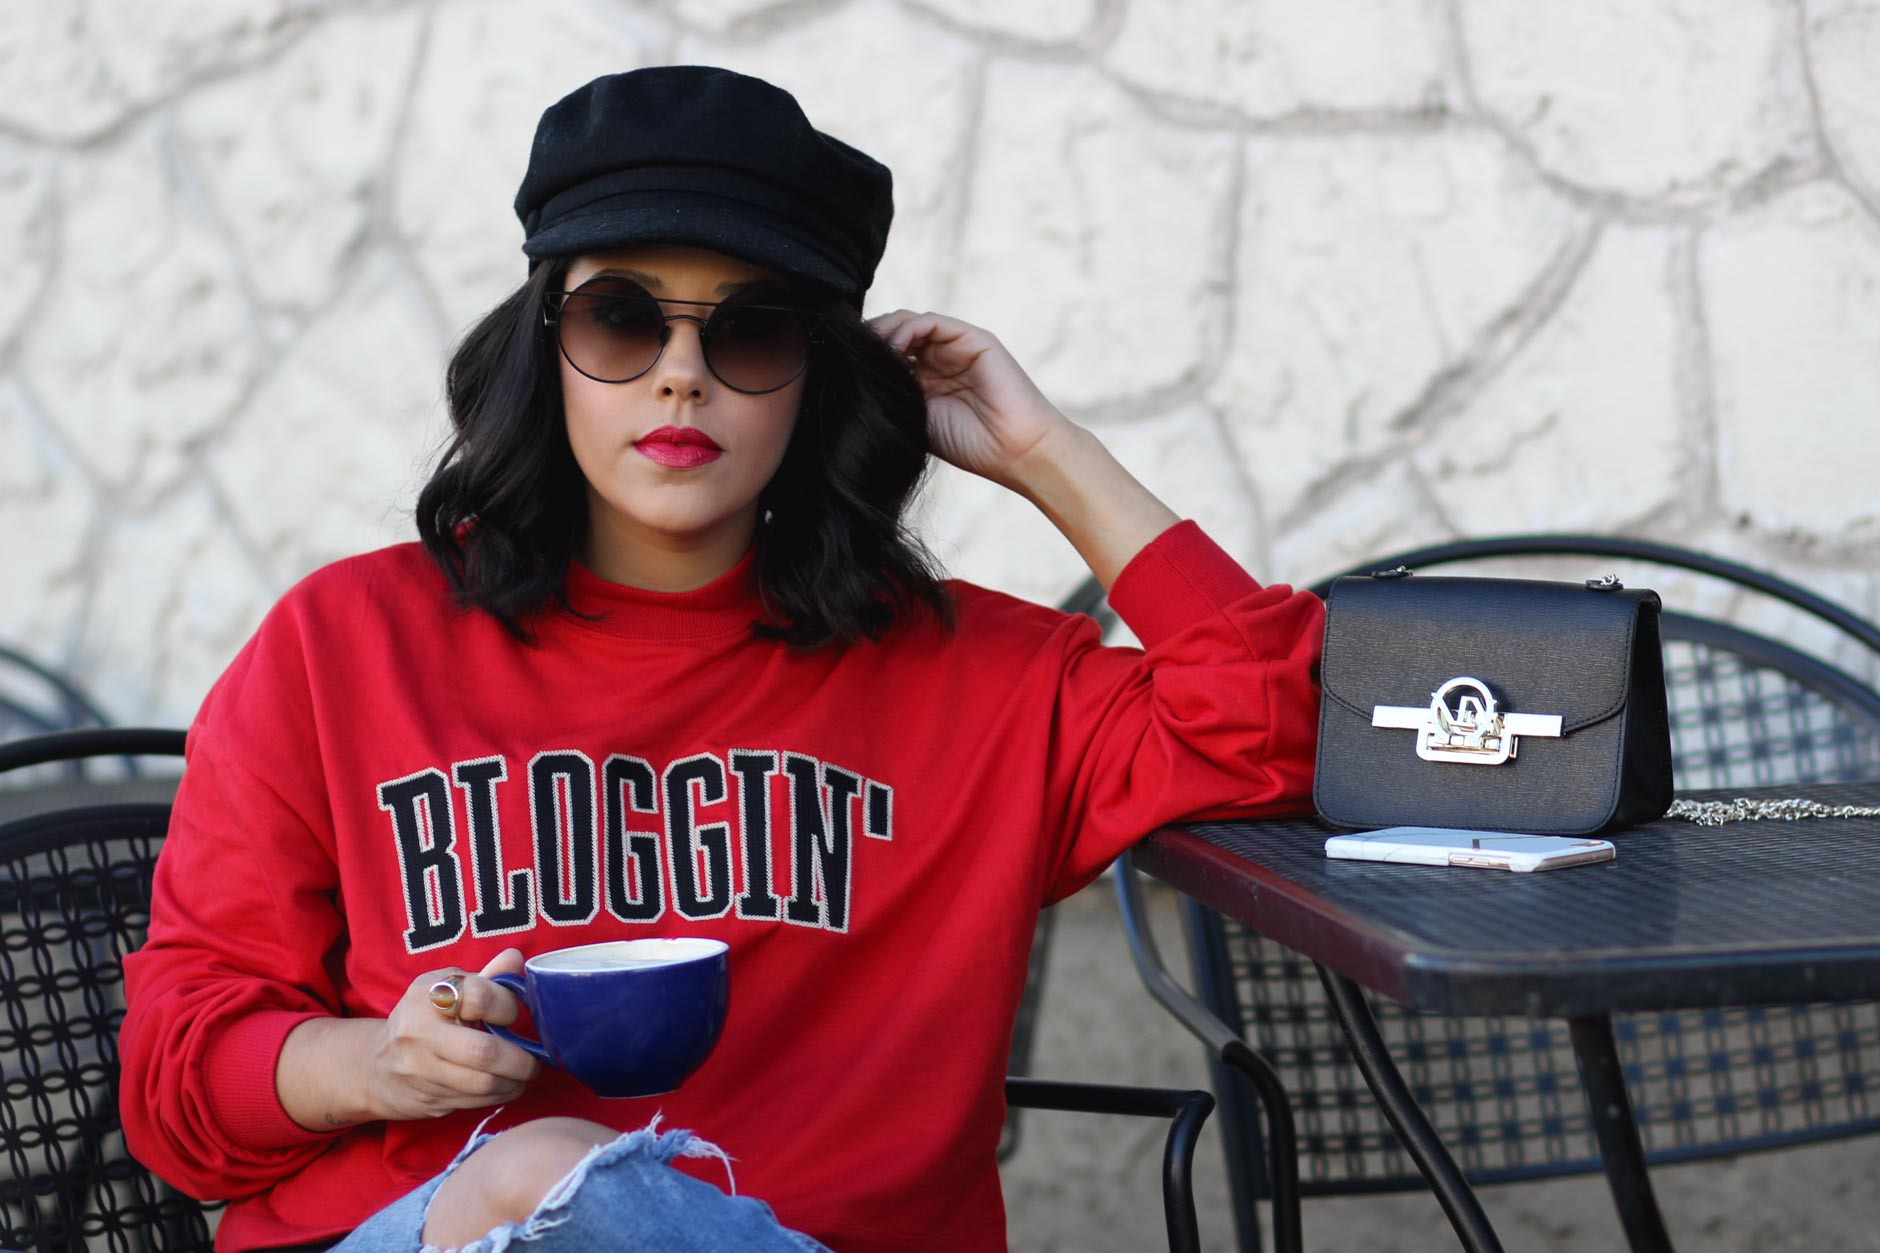 lifestyle blogger naty michele wearing a blogging sweatshirt holding coffee